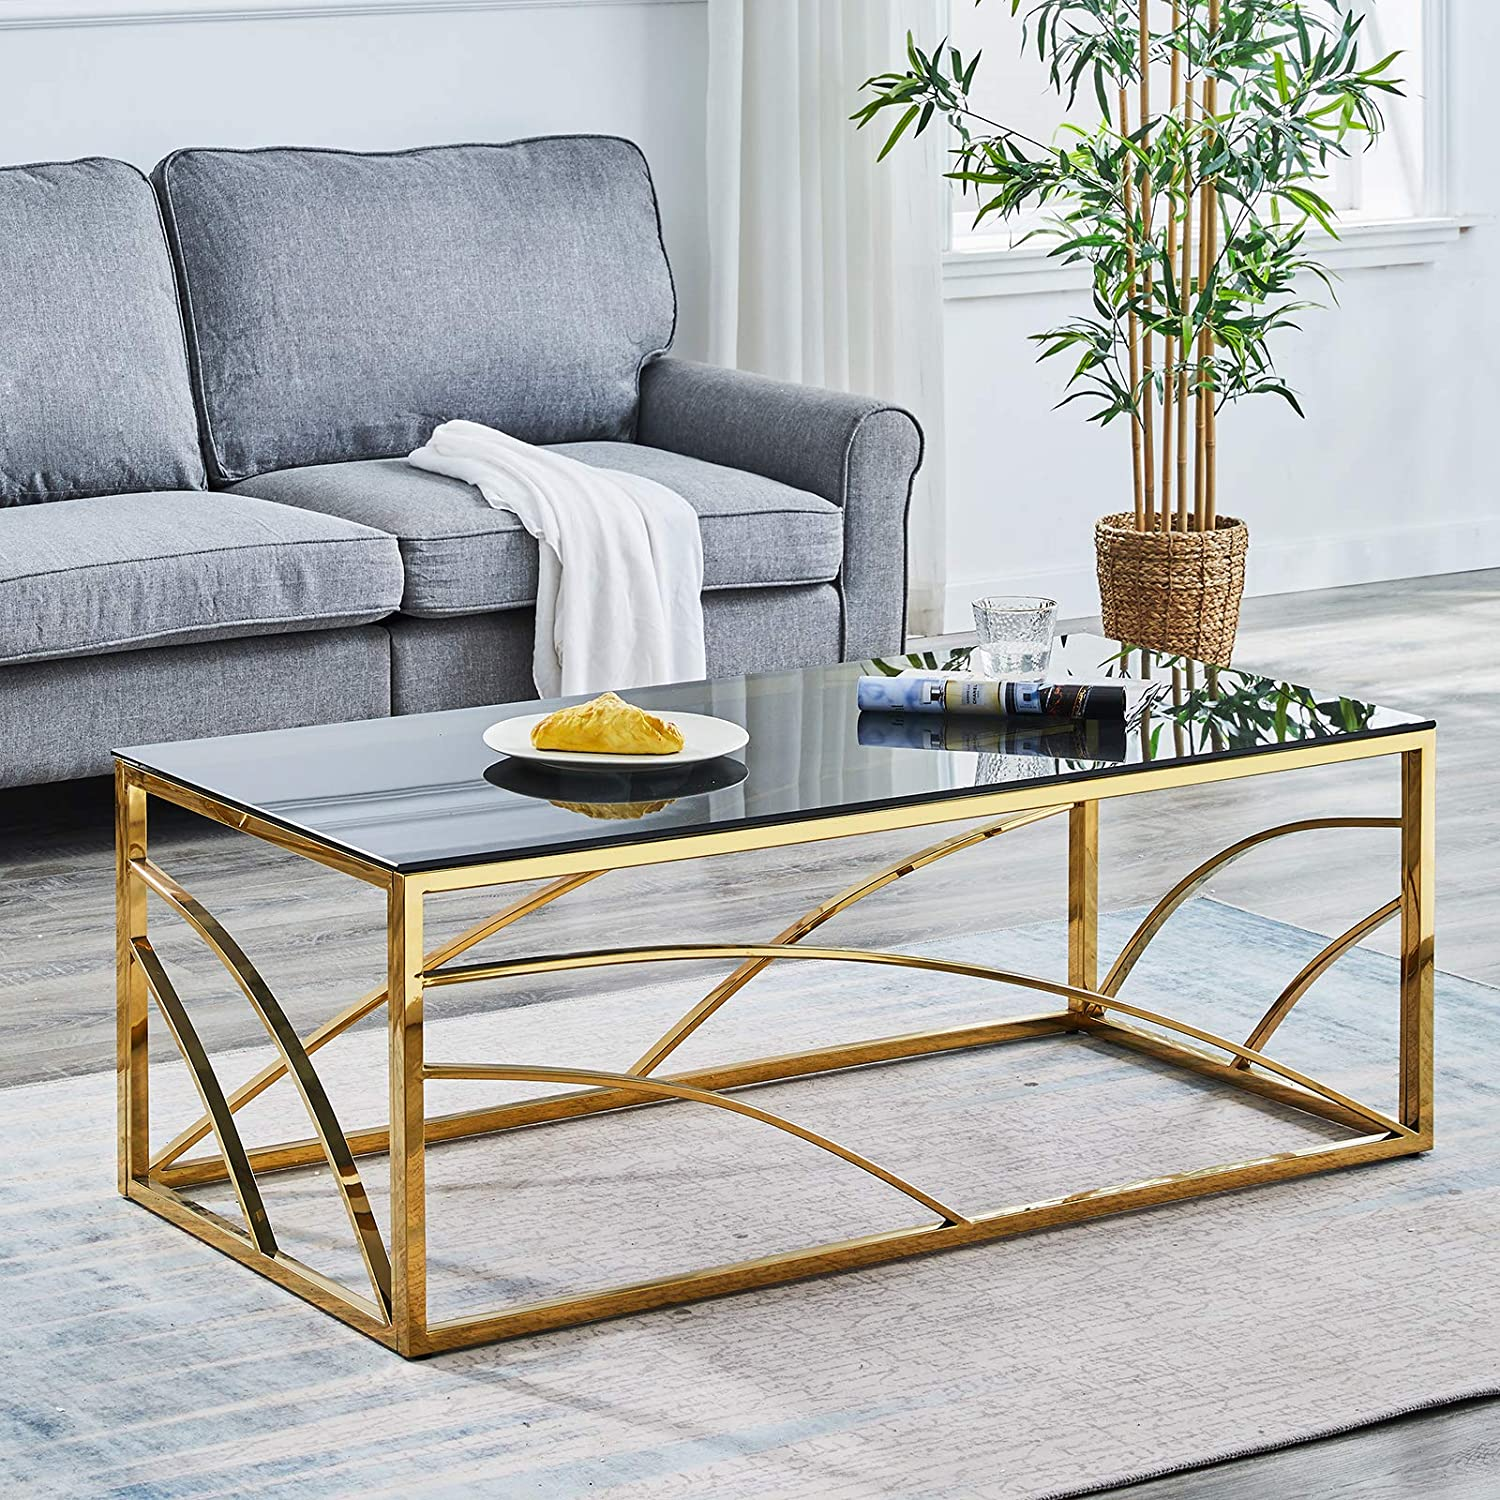 Ainpecca Coffee Table Stainless Steel End Table With Light Grey Tempered Glass Design Living Room Gold Coffee Table B Amazon Co Uk Kitchen Home [ 1500 x 1500 Pixel ]